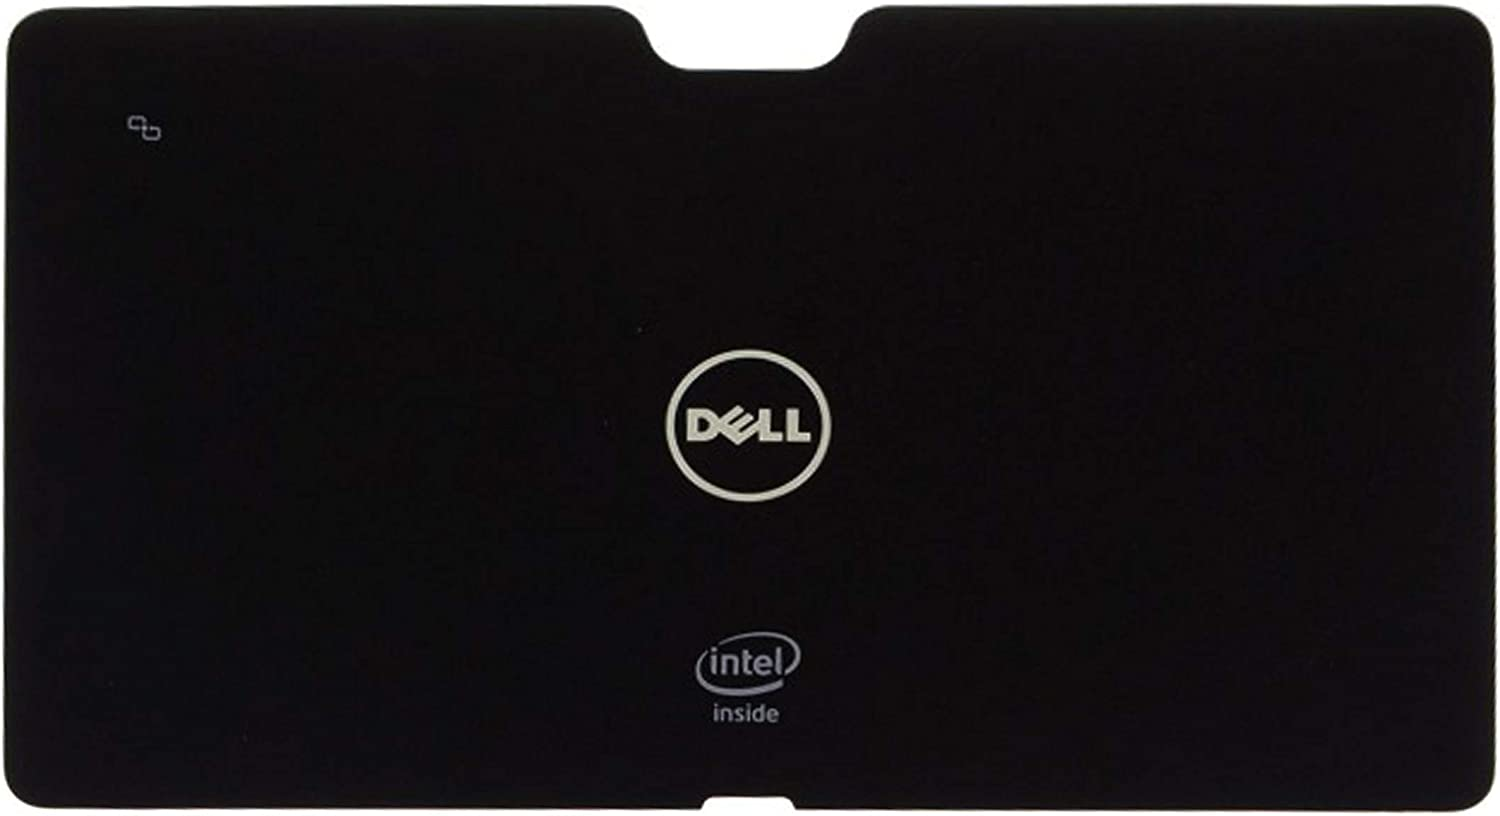 CMXGV - Dell Venue 11 Pro (5130) Tablet Bottom Access Panel Door Cover - CMXGV